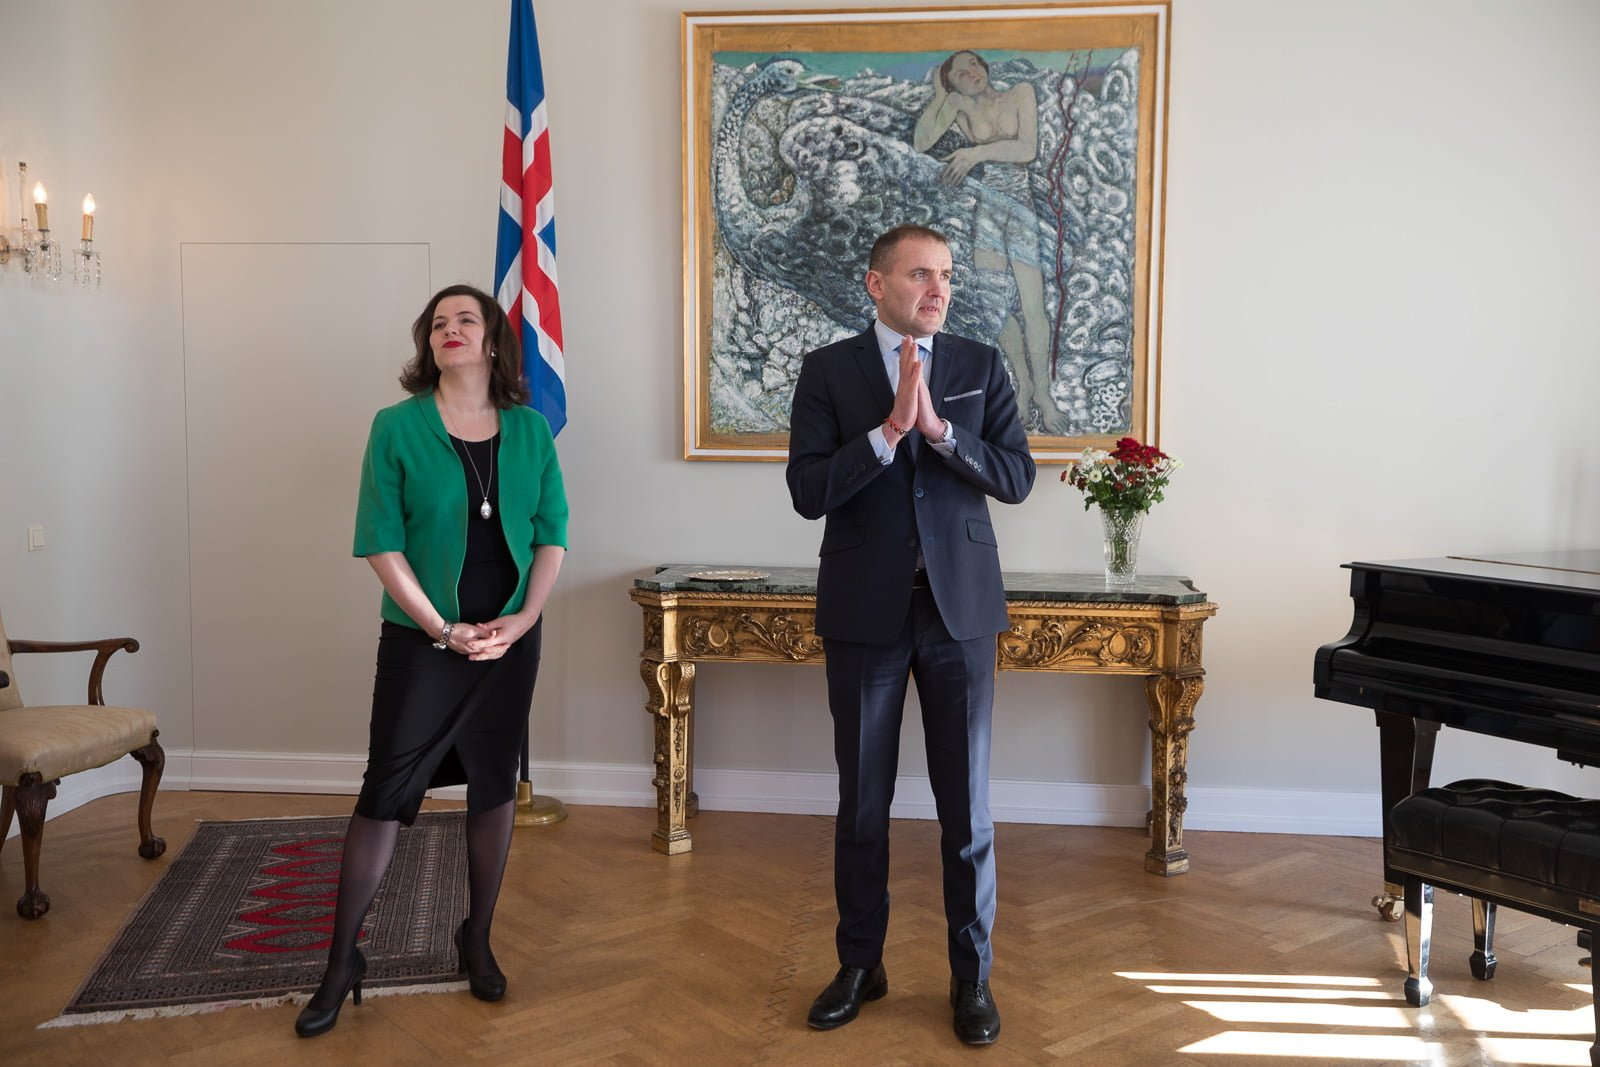 President Of Iceland Says Icelanders Should Stop Joking About Global Warming